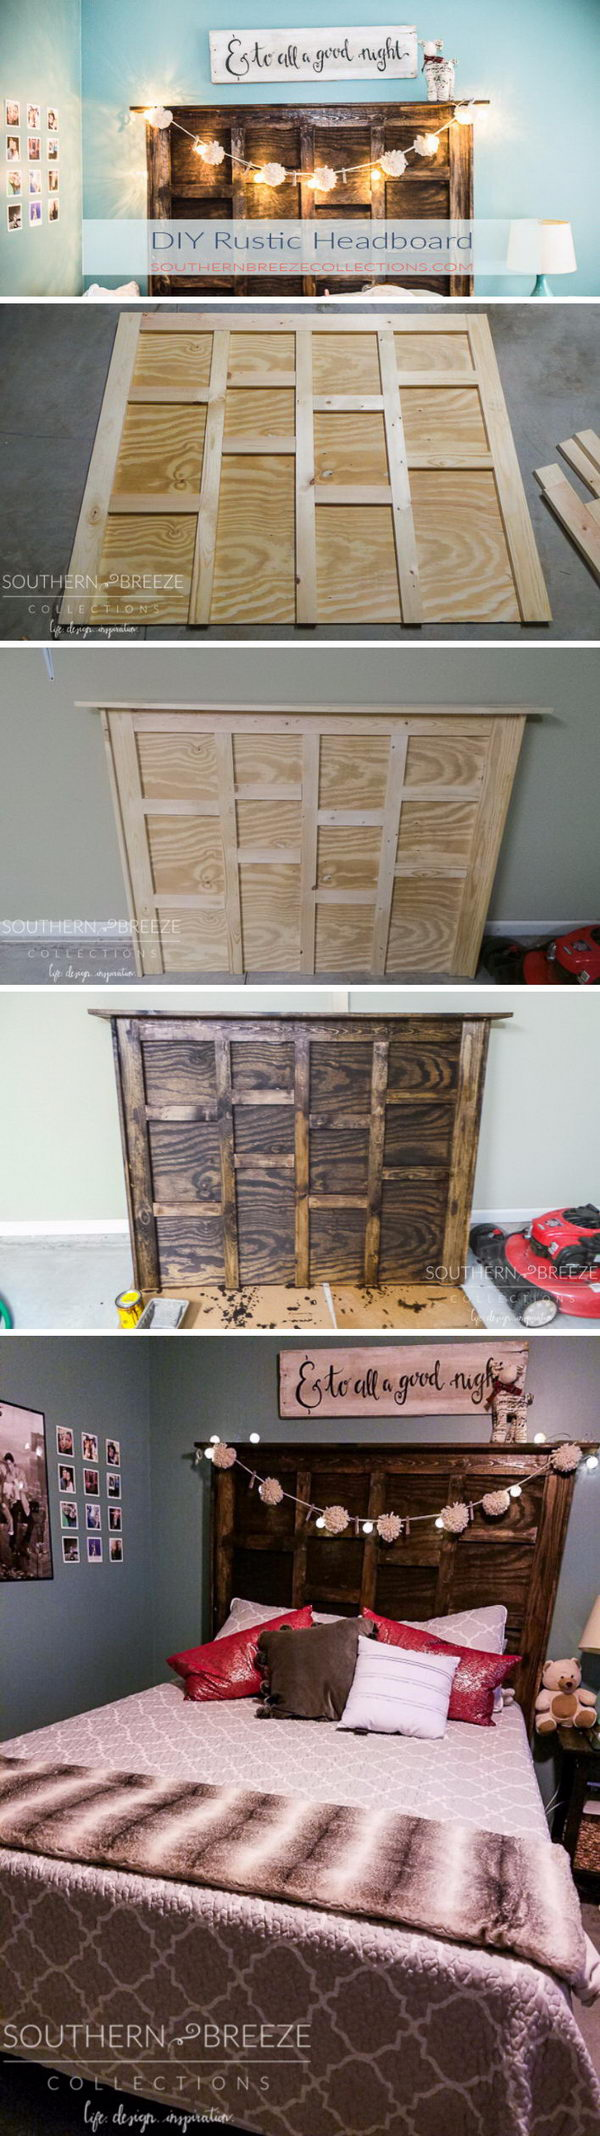 DIY Rustic Headboard Using Plywood.